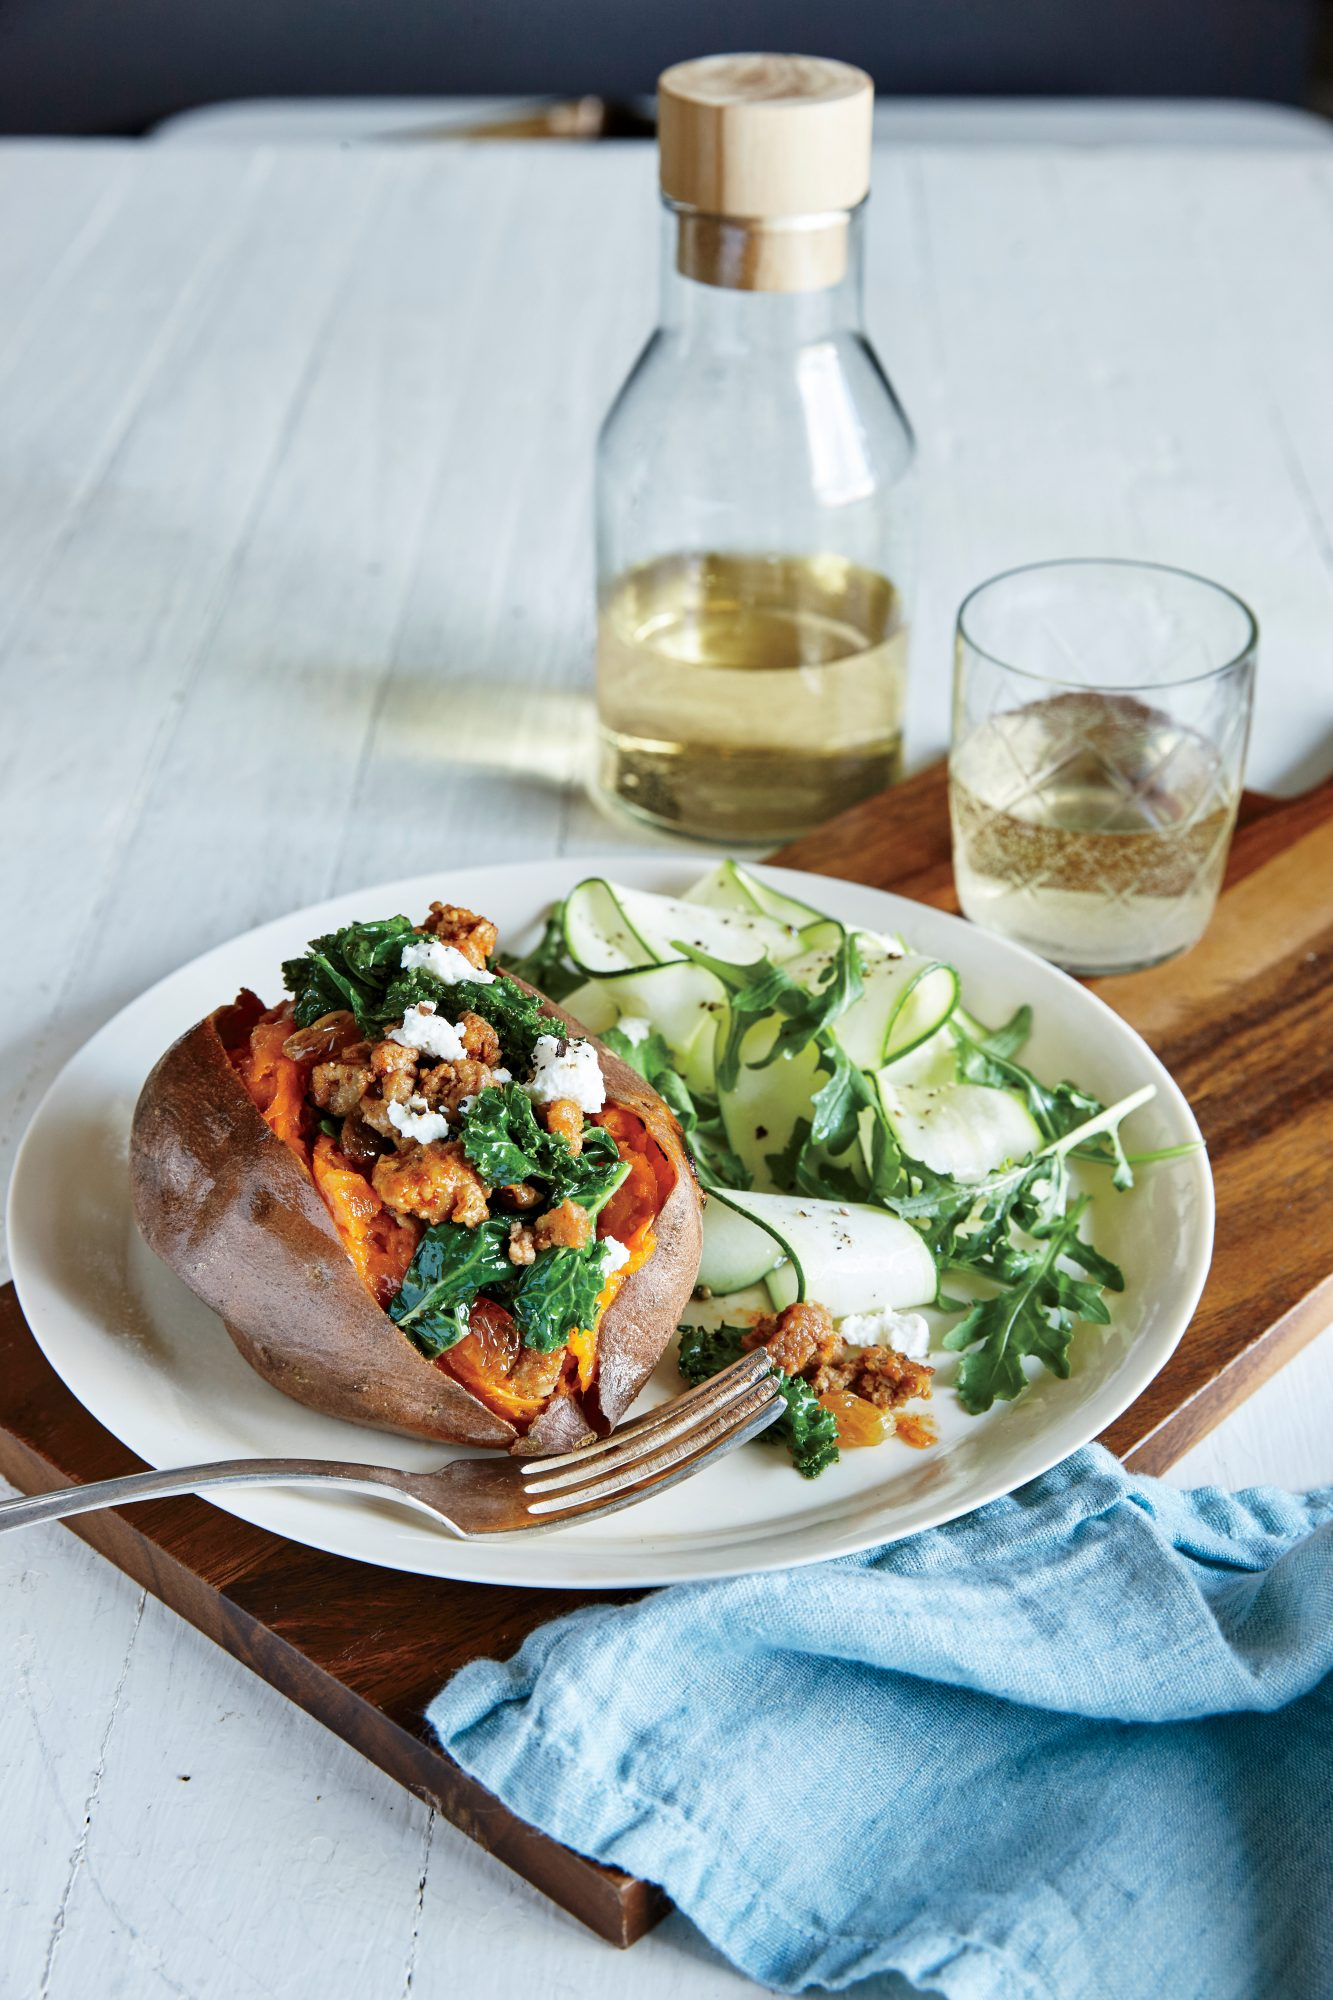 Chorizo and Kale-Stuffed Sweet Potatoes with Zucchini-Arugula Salad